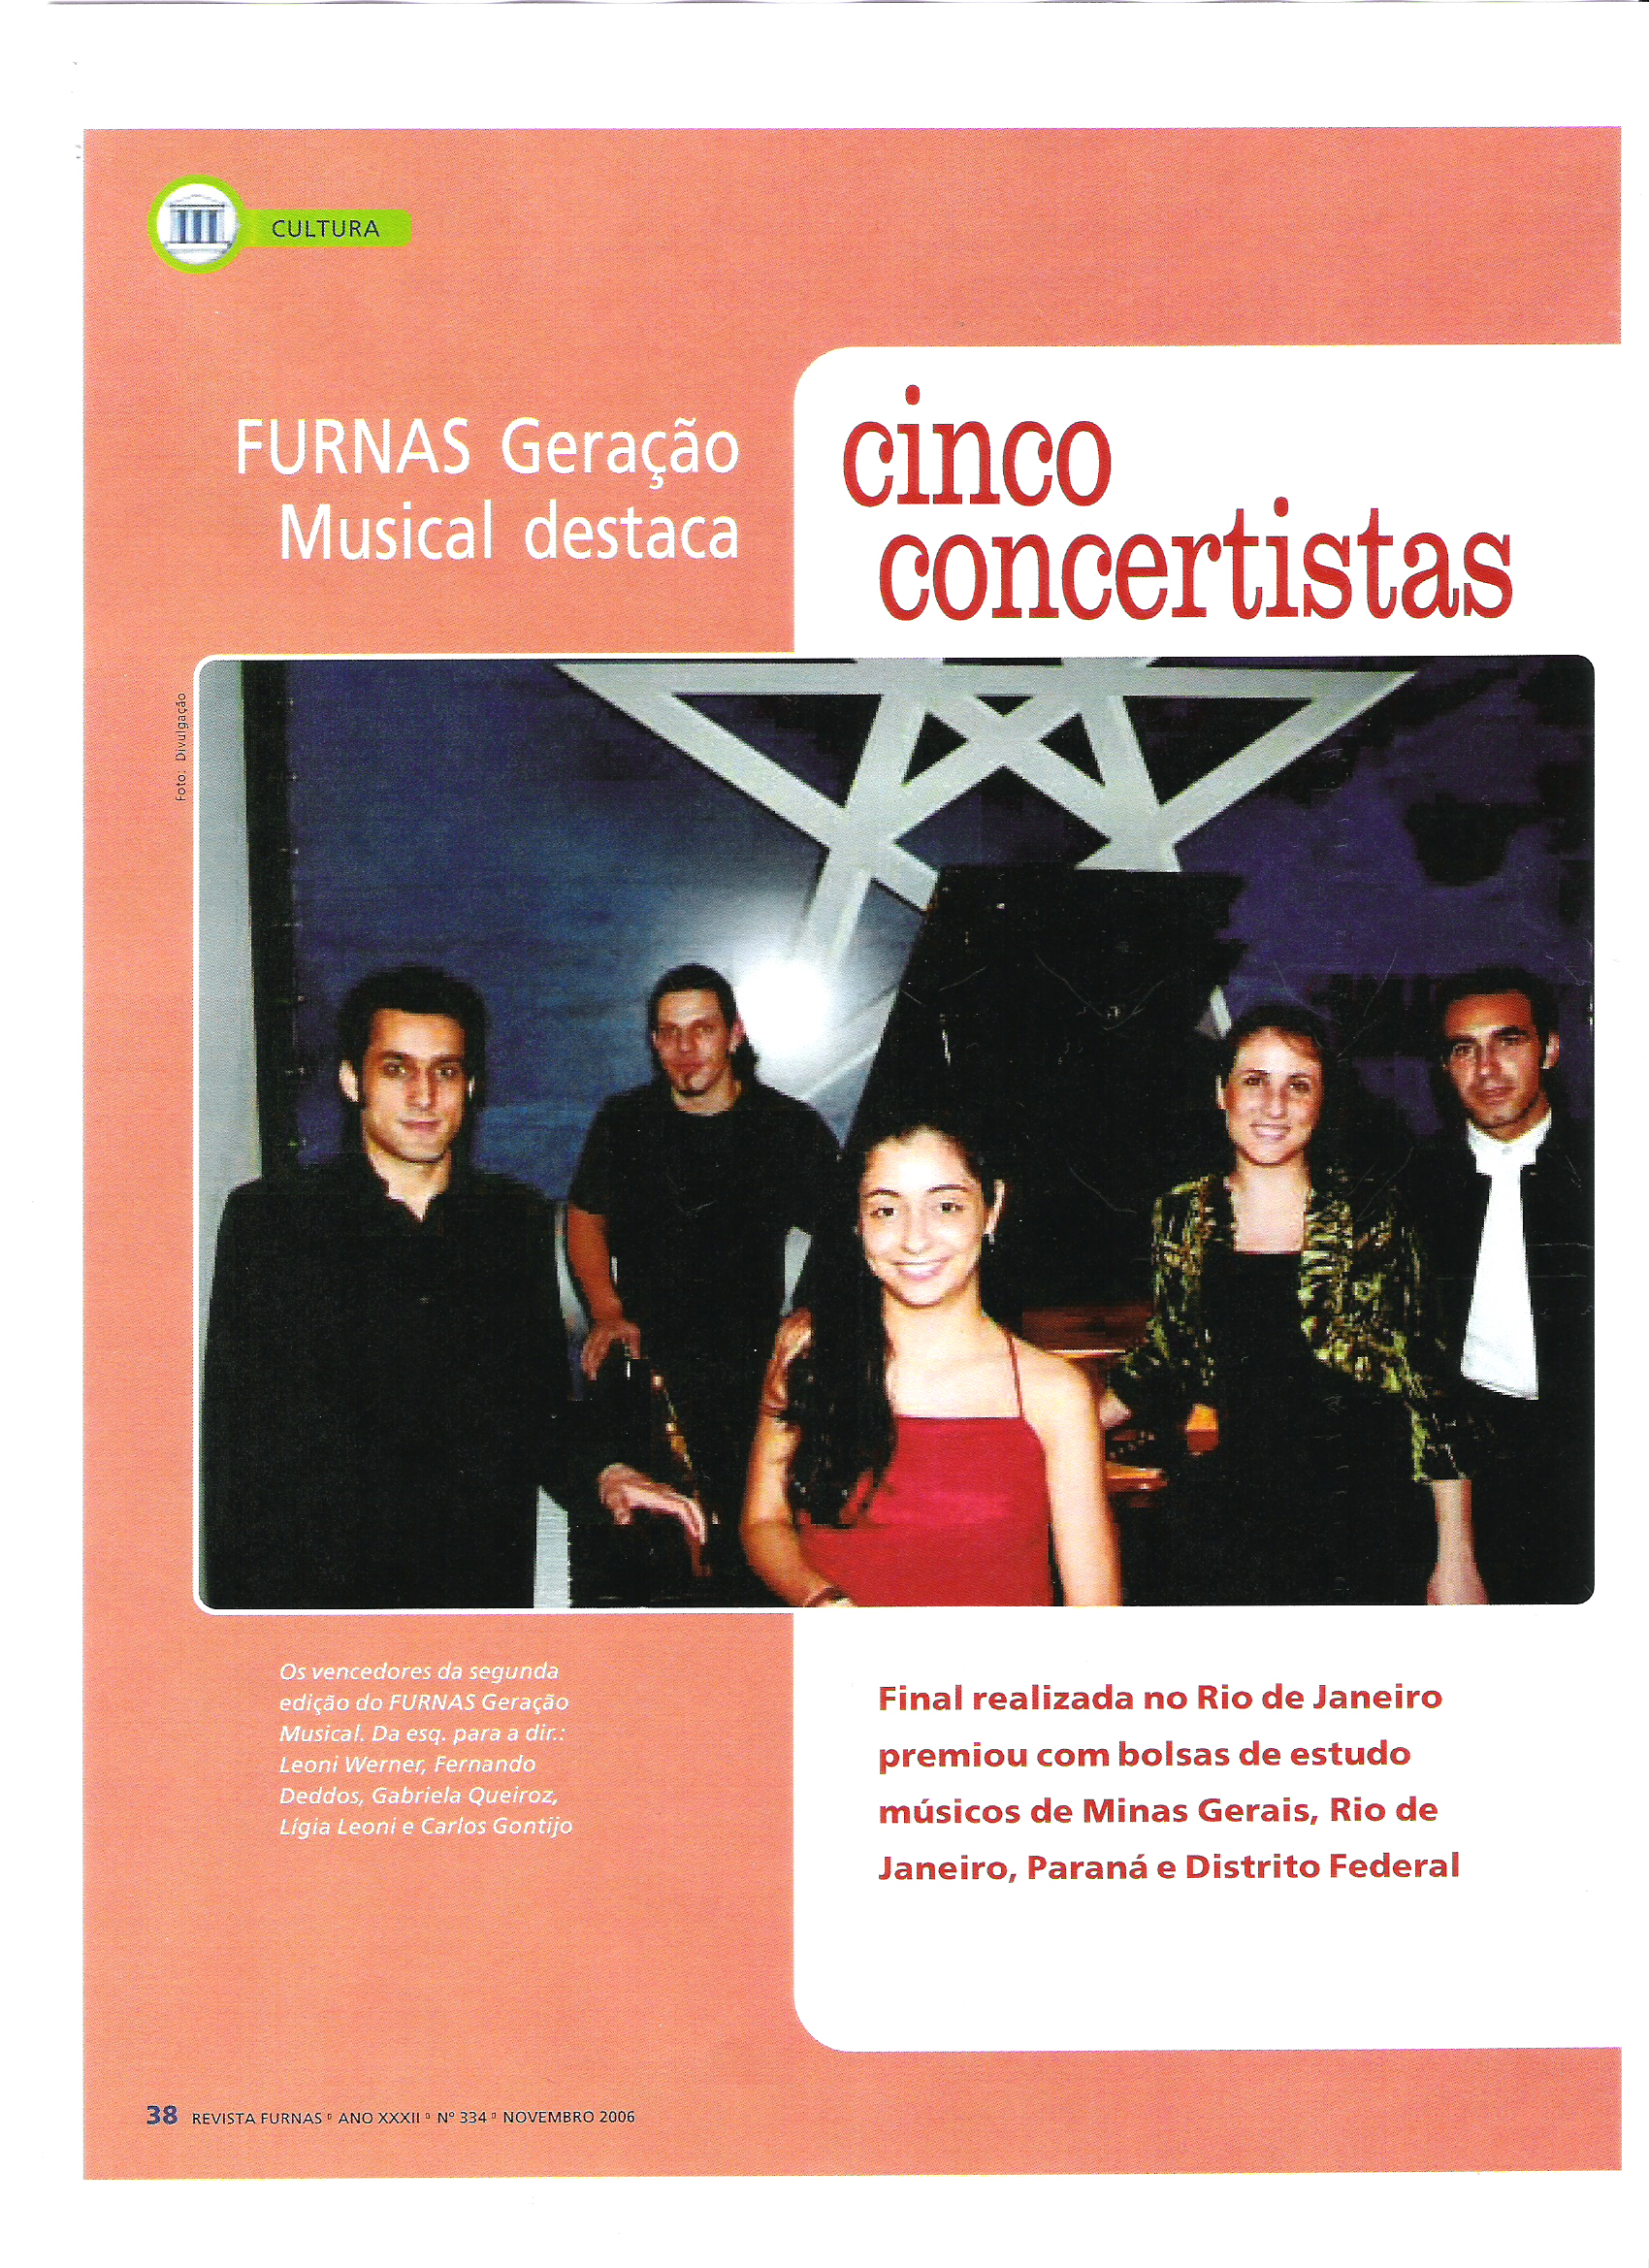 Revista Furnas 2006